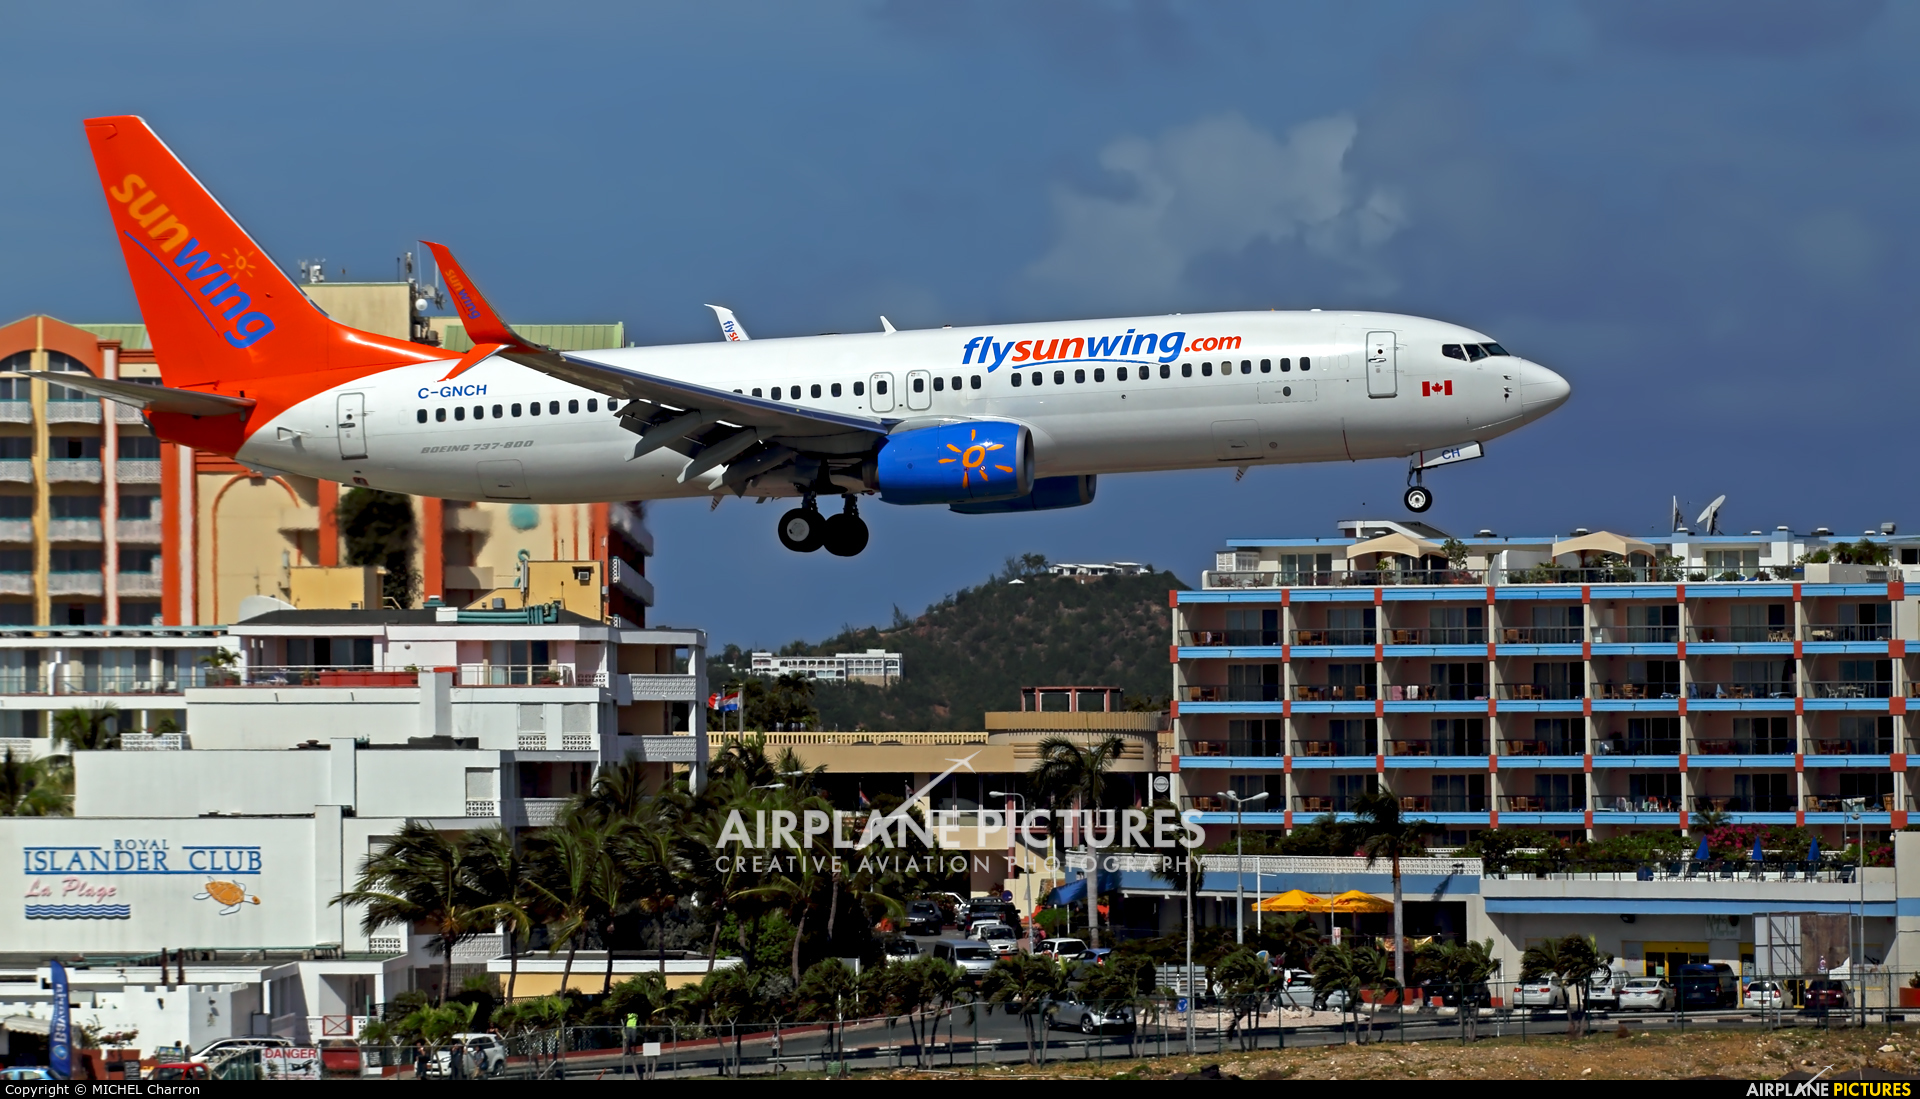 Sunwing Airlines C-GNCH aircraft at Sint Maarten - Princess Juliana Intl